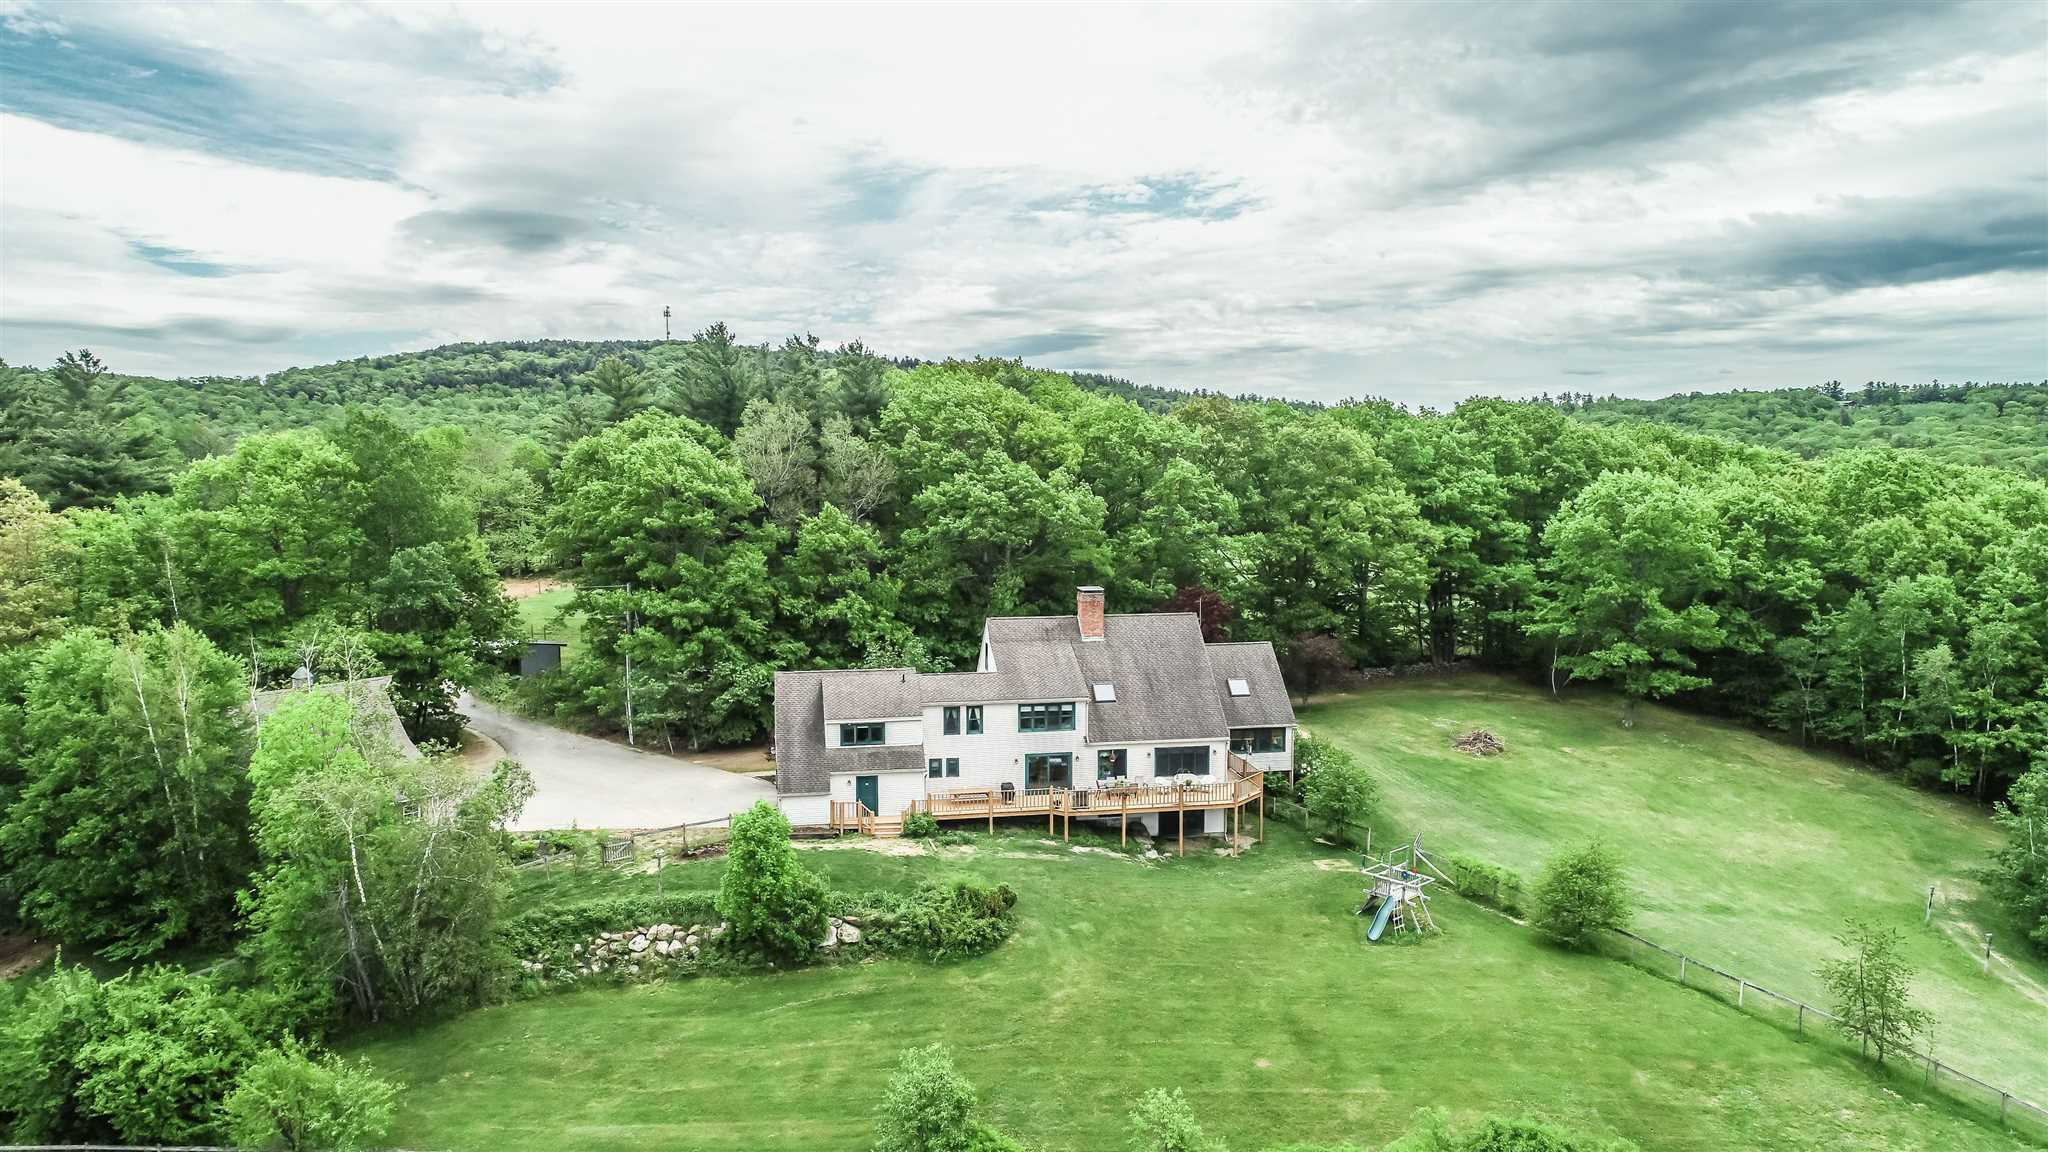 PITTSFIELD NHHomes for sale